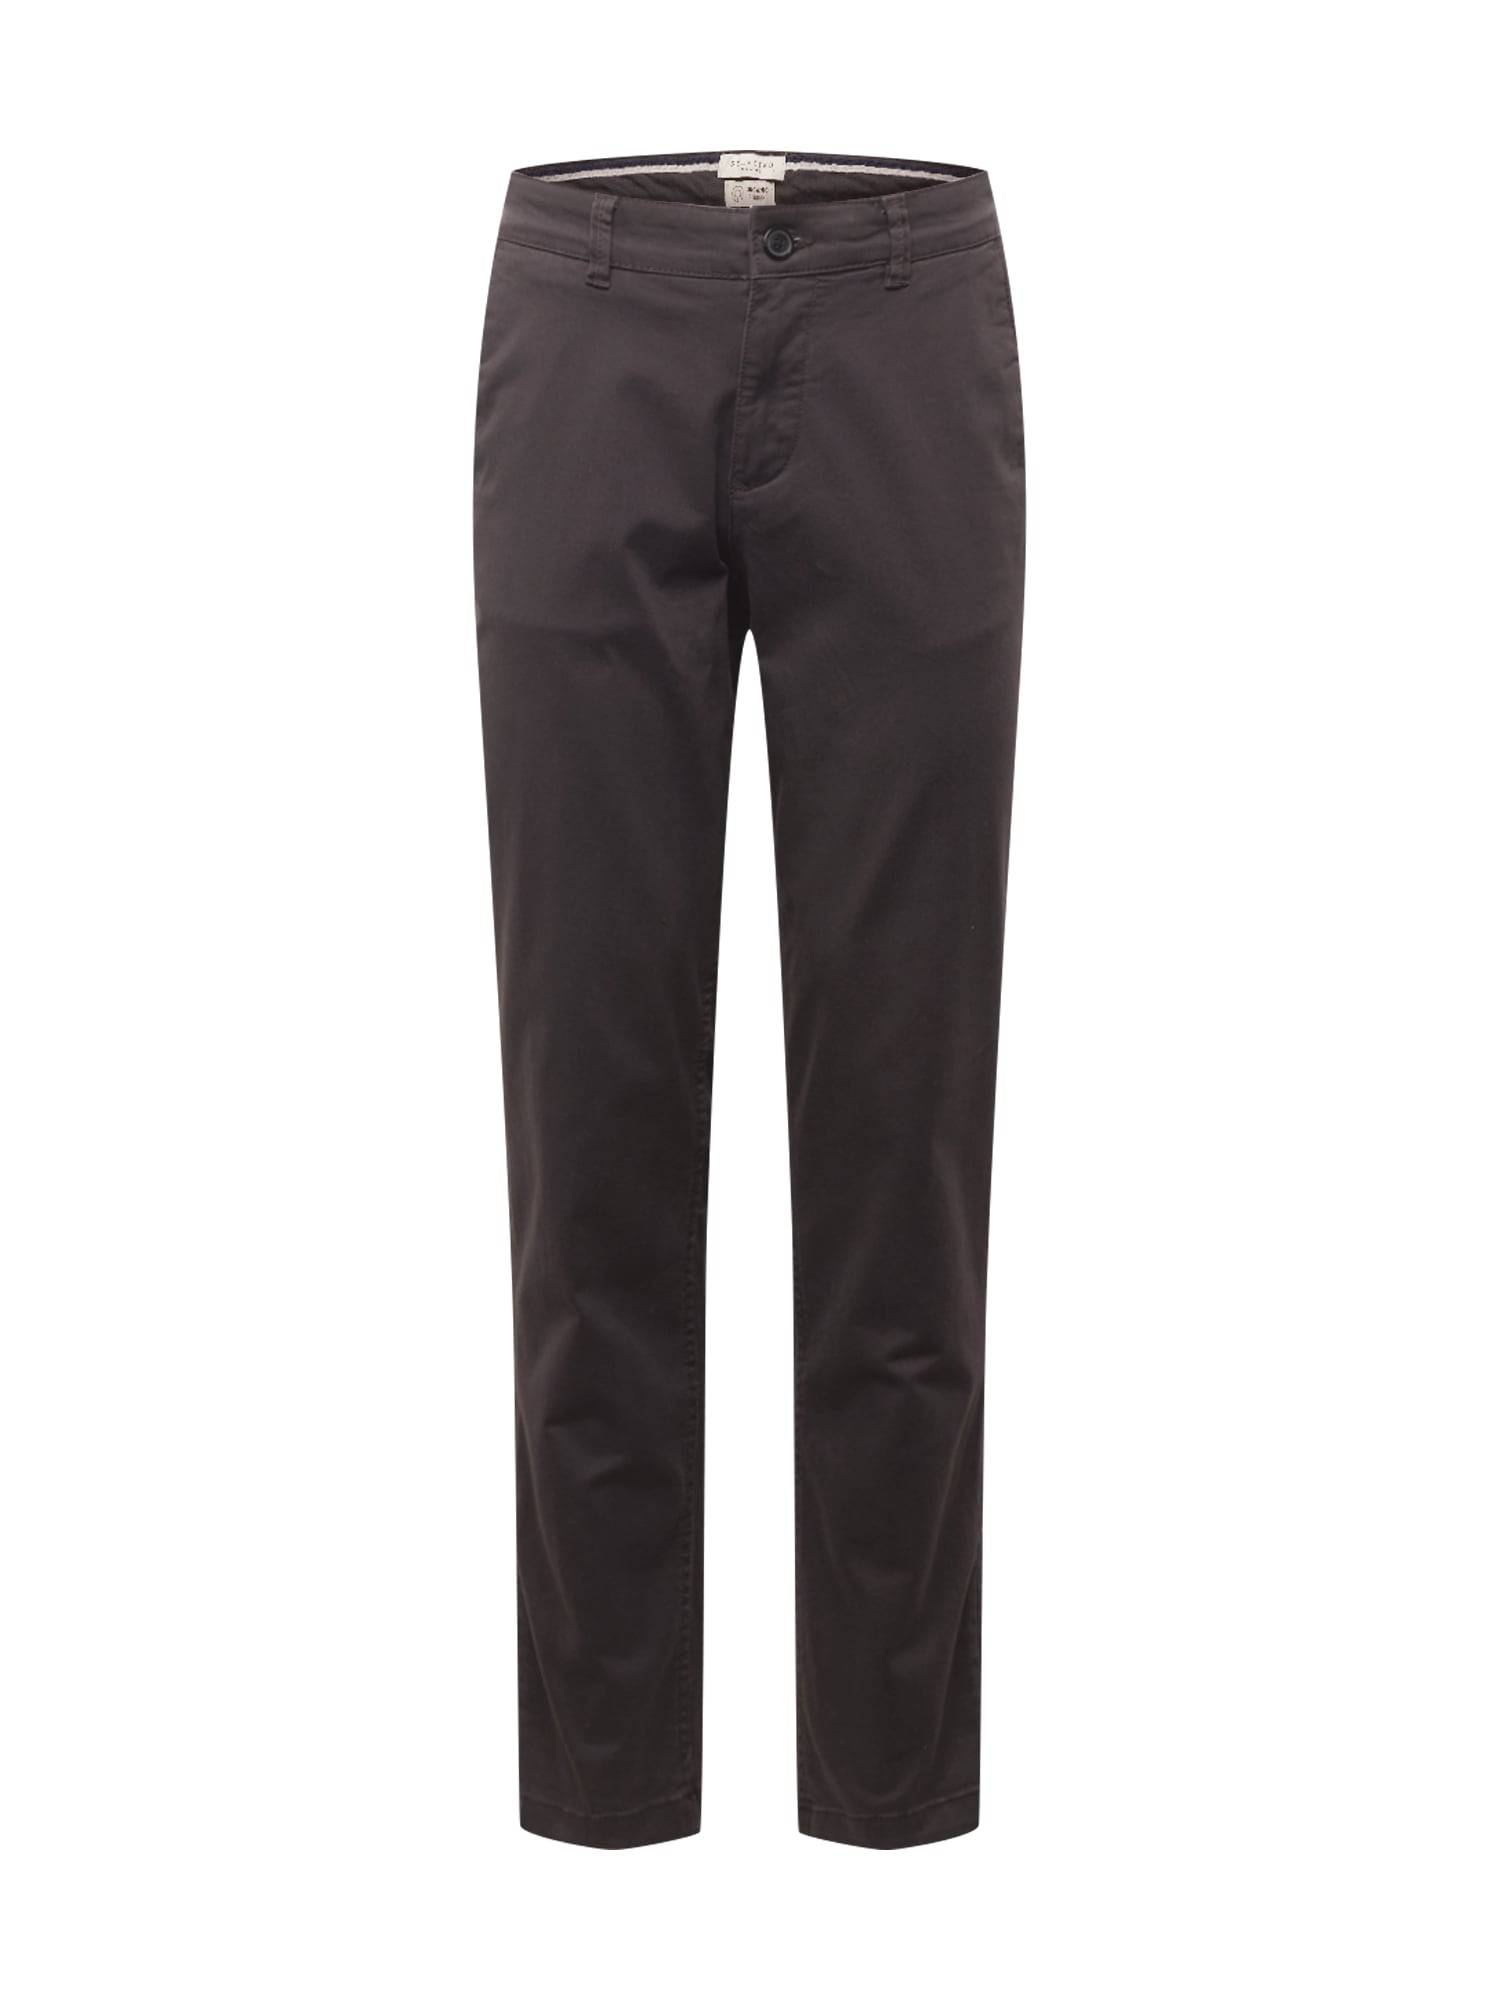 SELECTED HOMME Pantalon chino 'NEW PARIS'  - Gris - Taille: 33 - male